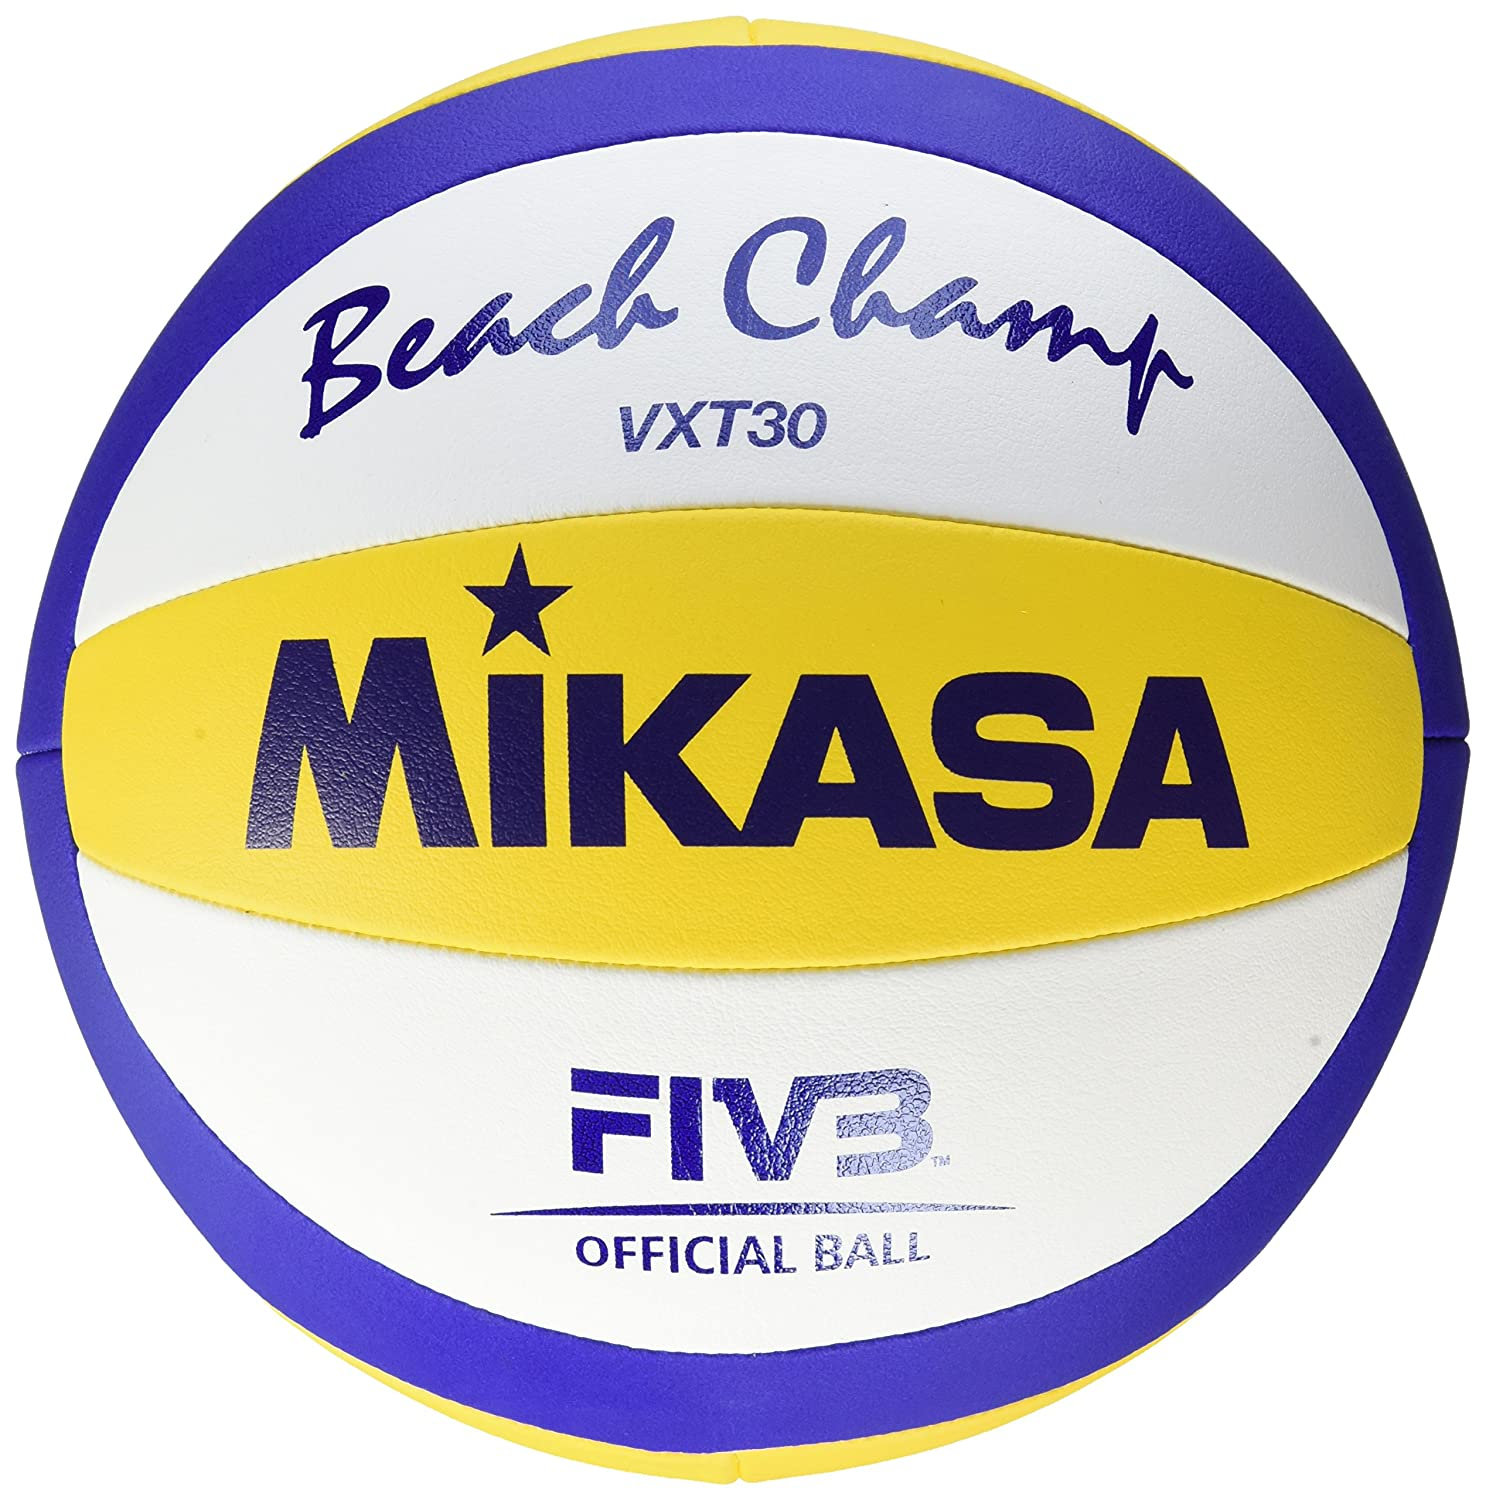 Mikasa VXT30 Beach Champ DVV - Pelota para volley playa, color azul/amarillo / blanco - 66-68 cm Umfang 1611